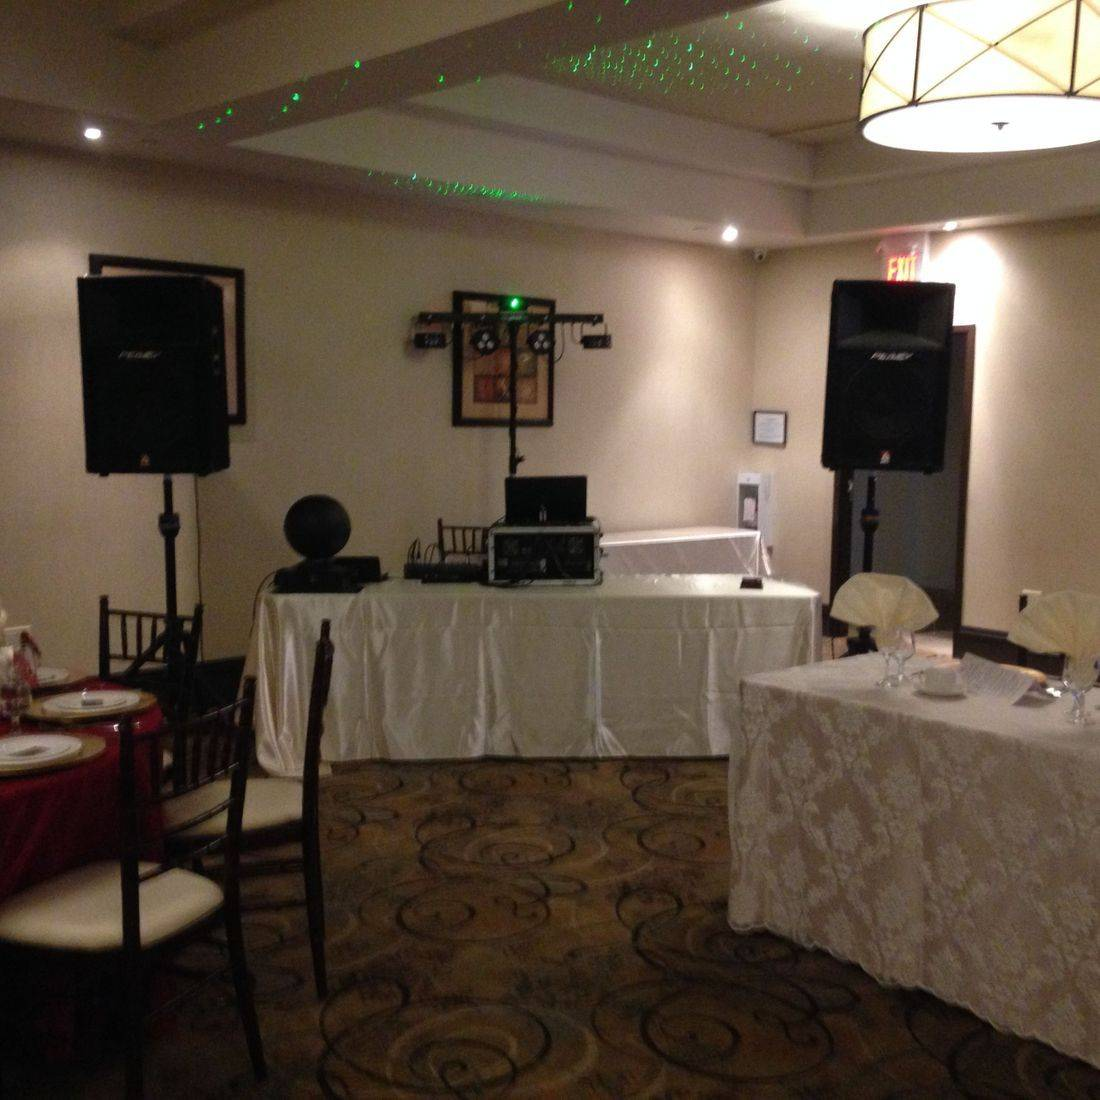 Mr. Productions DJ Service providing DJ Services for a Wedding at the Marquis Gardens in Ancaster.